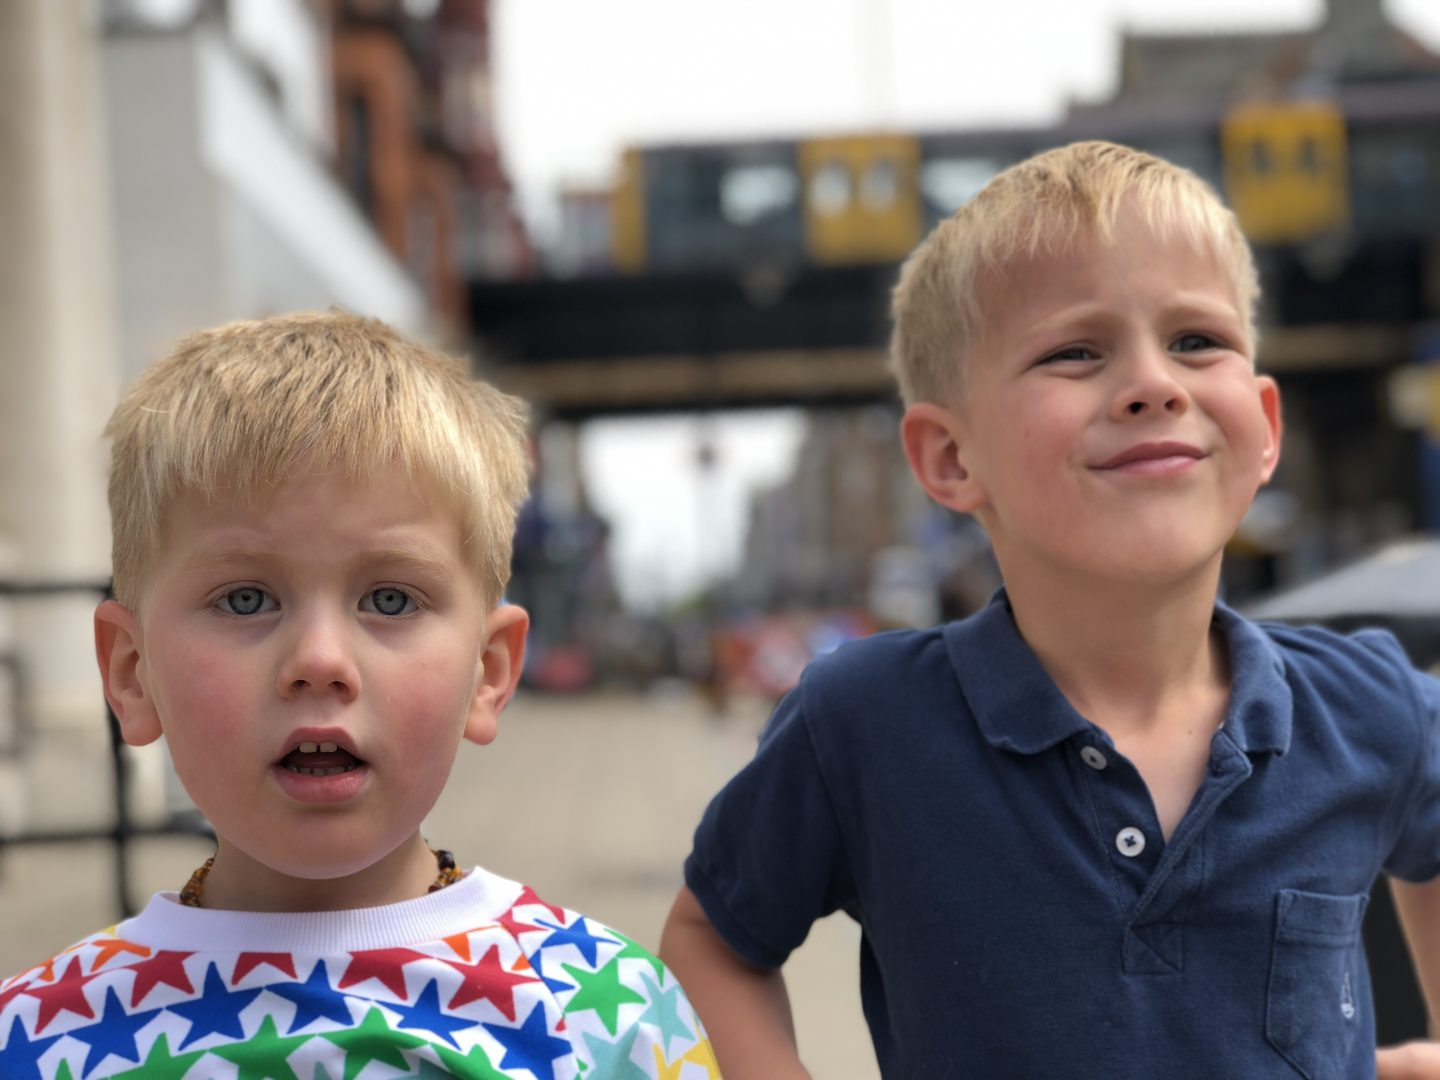 Two boys in South Shields with the Metro behind them